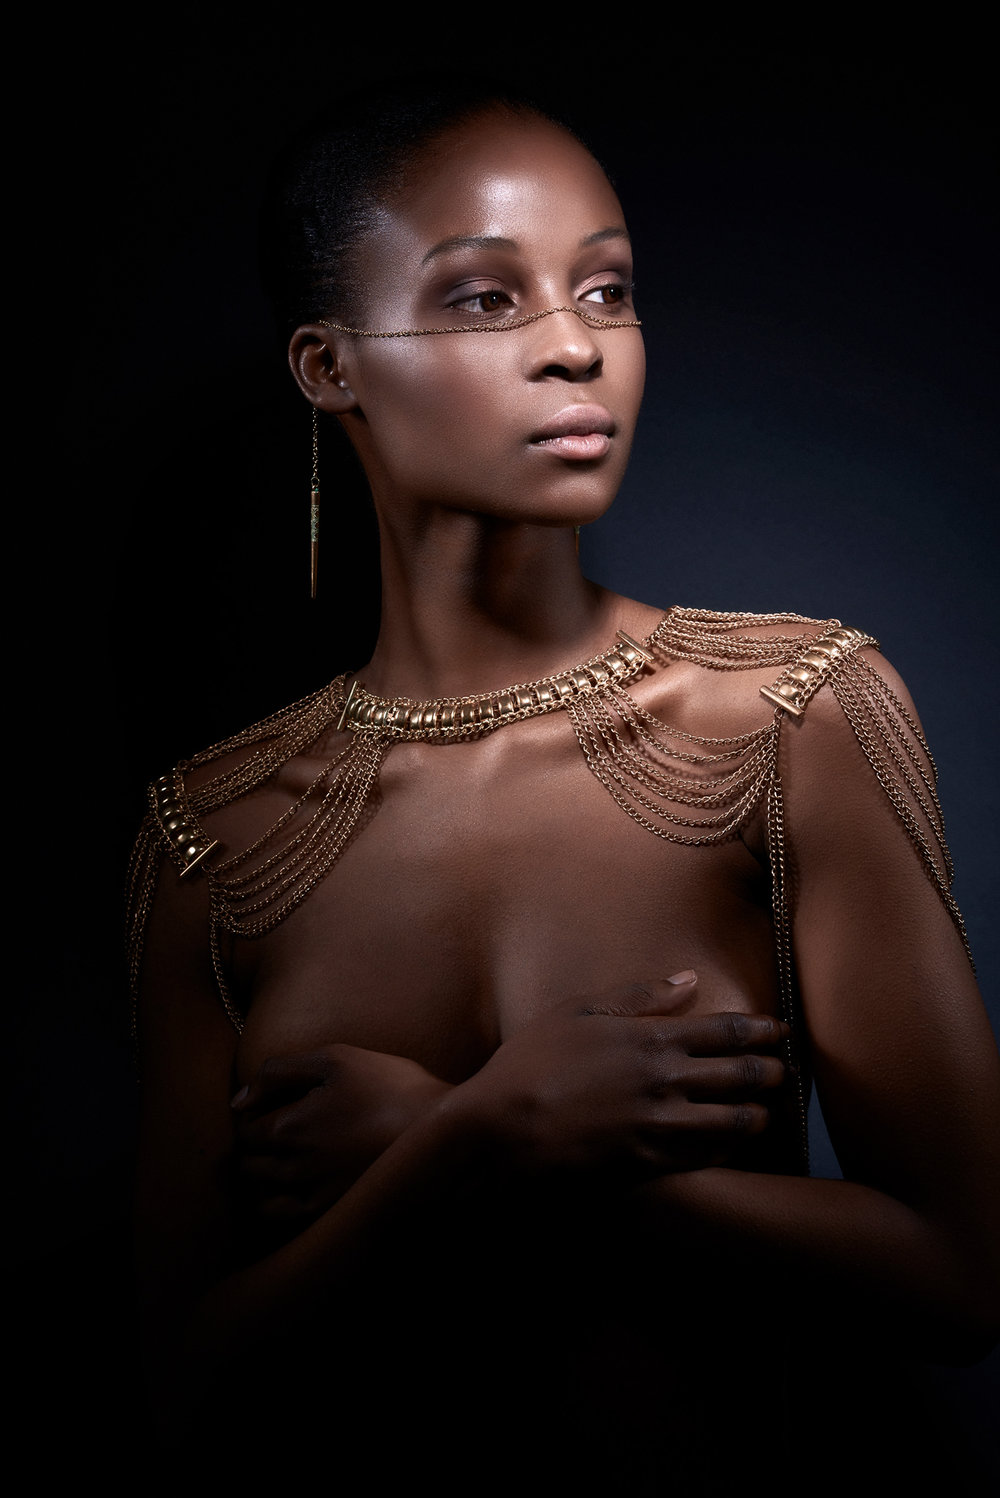 moody lighting nude model wearing face and body chain jewellery fashion photography